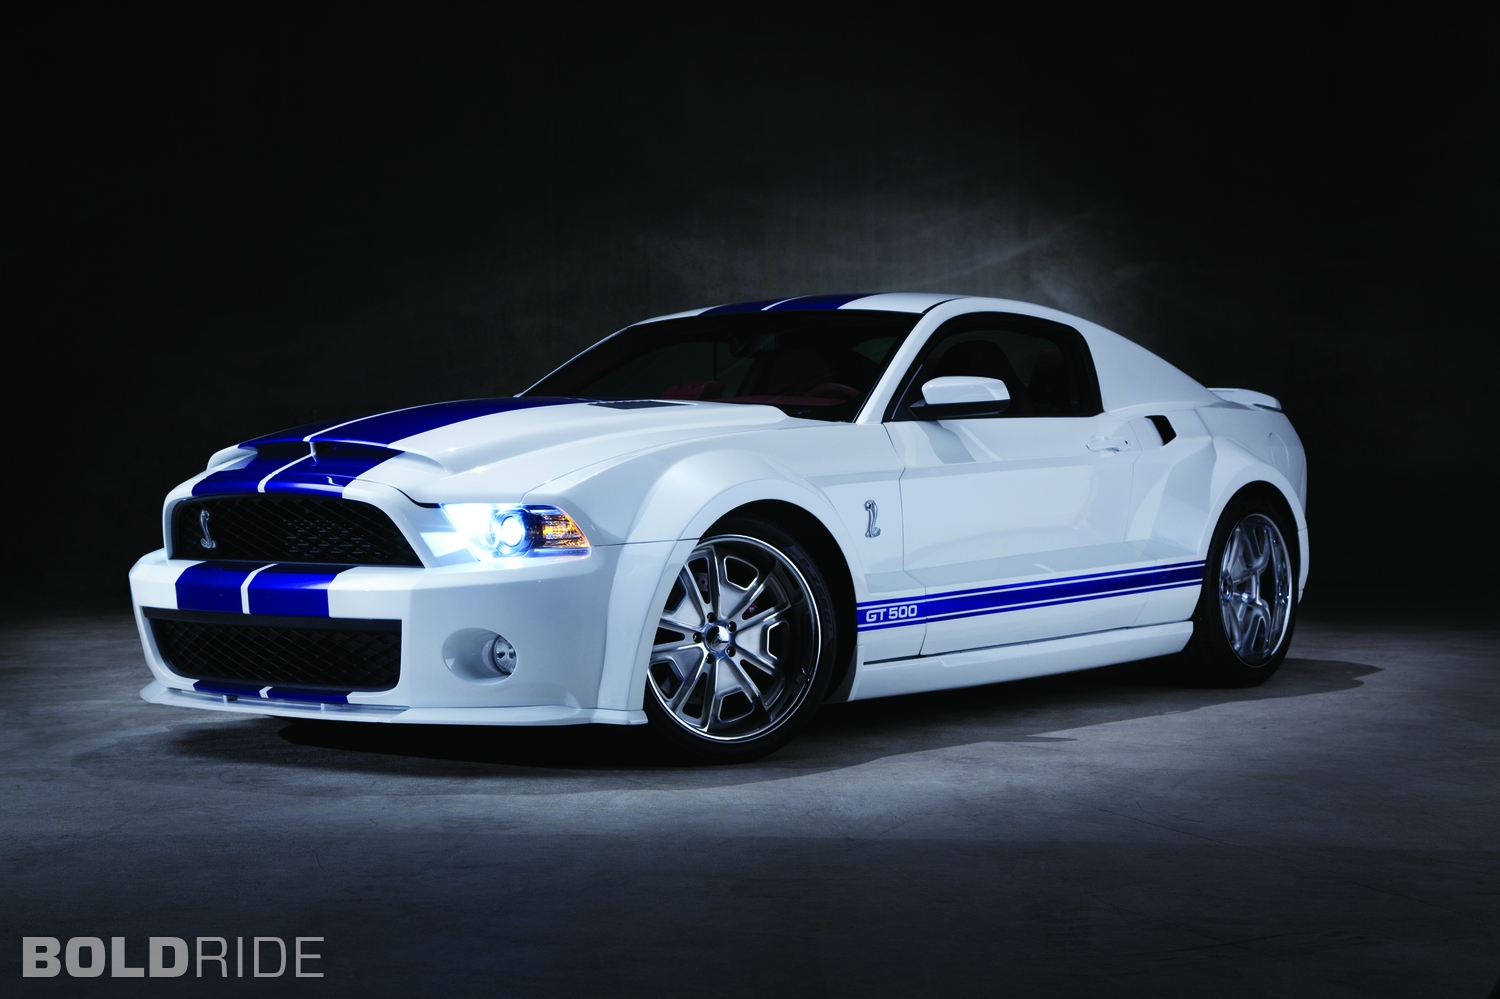 Ford Shelby Cobra Gt500 Wallpaper ANH PHOTOcom 1500x999